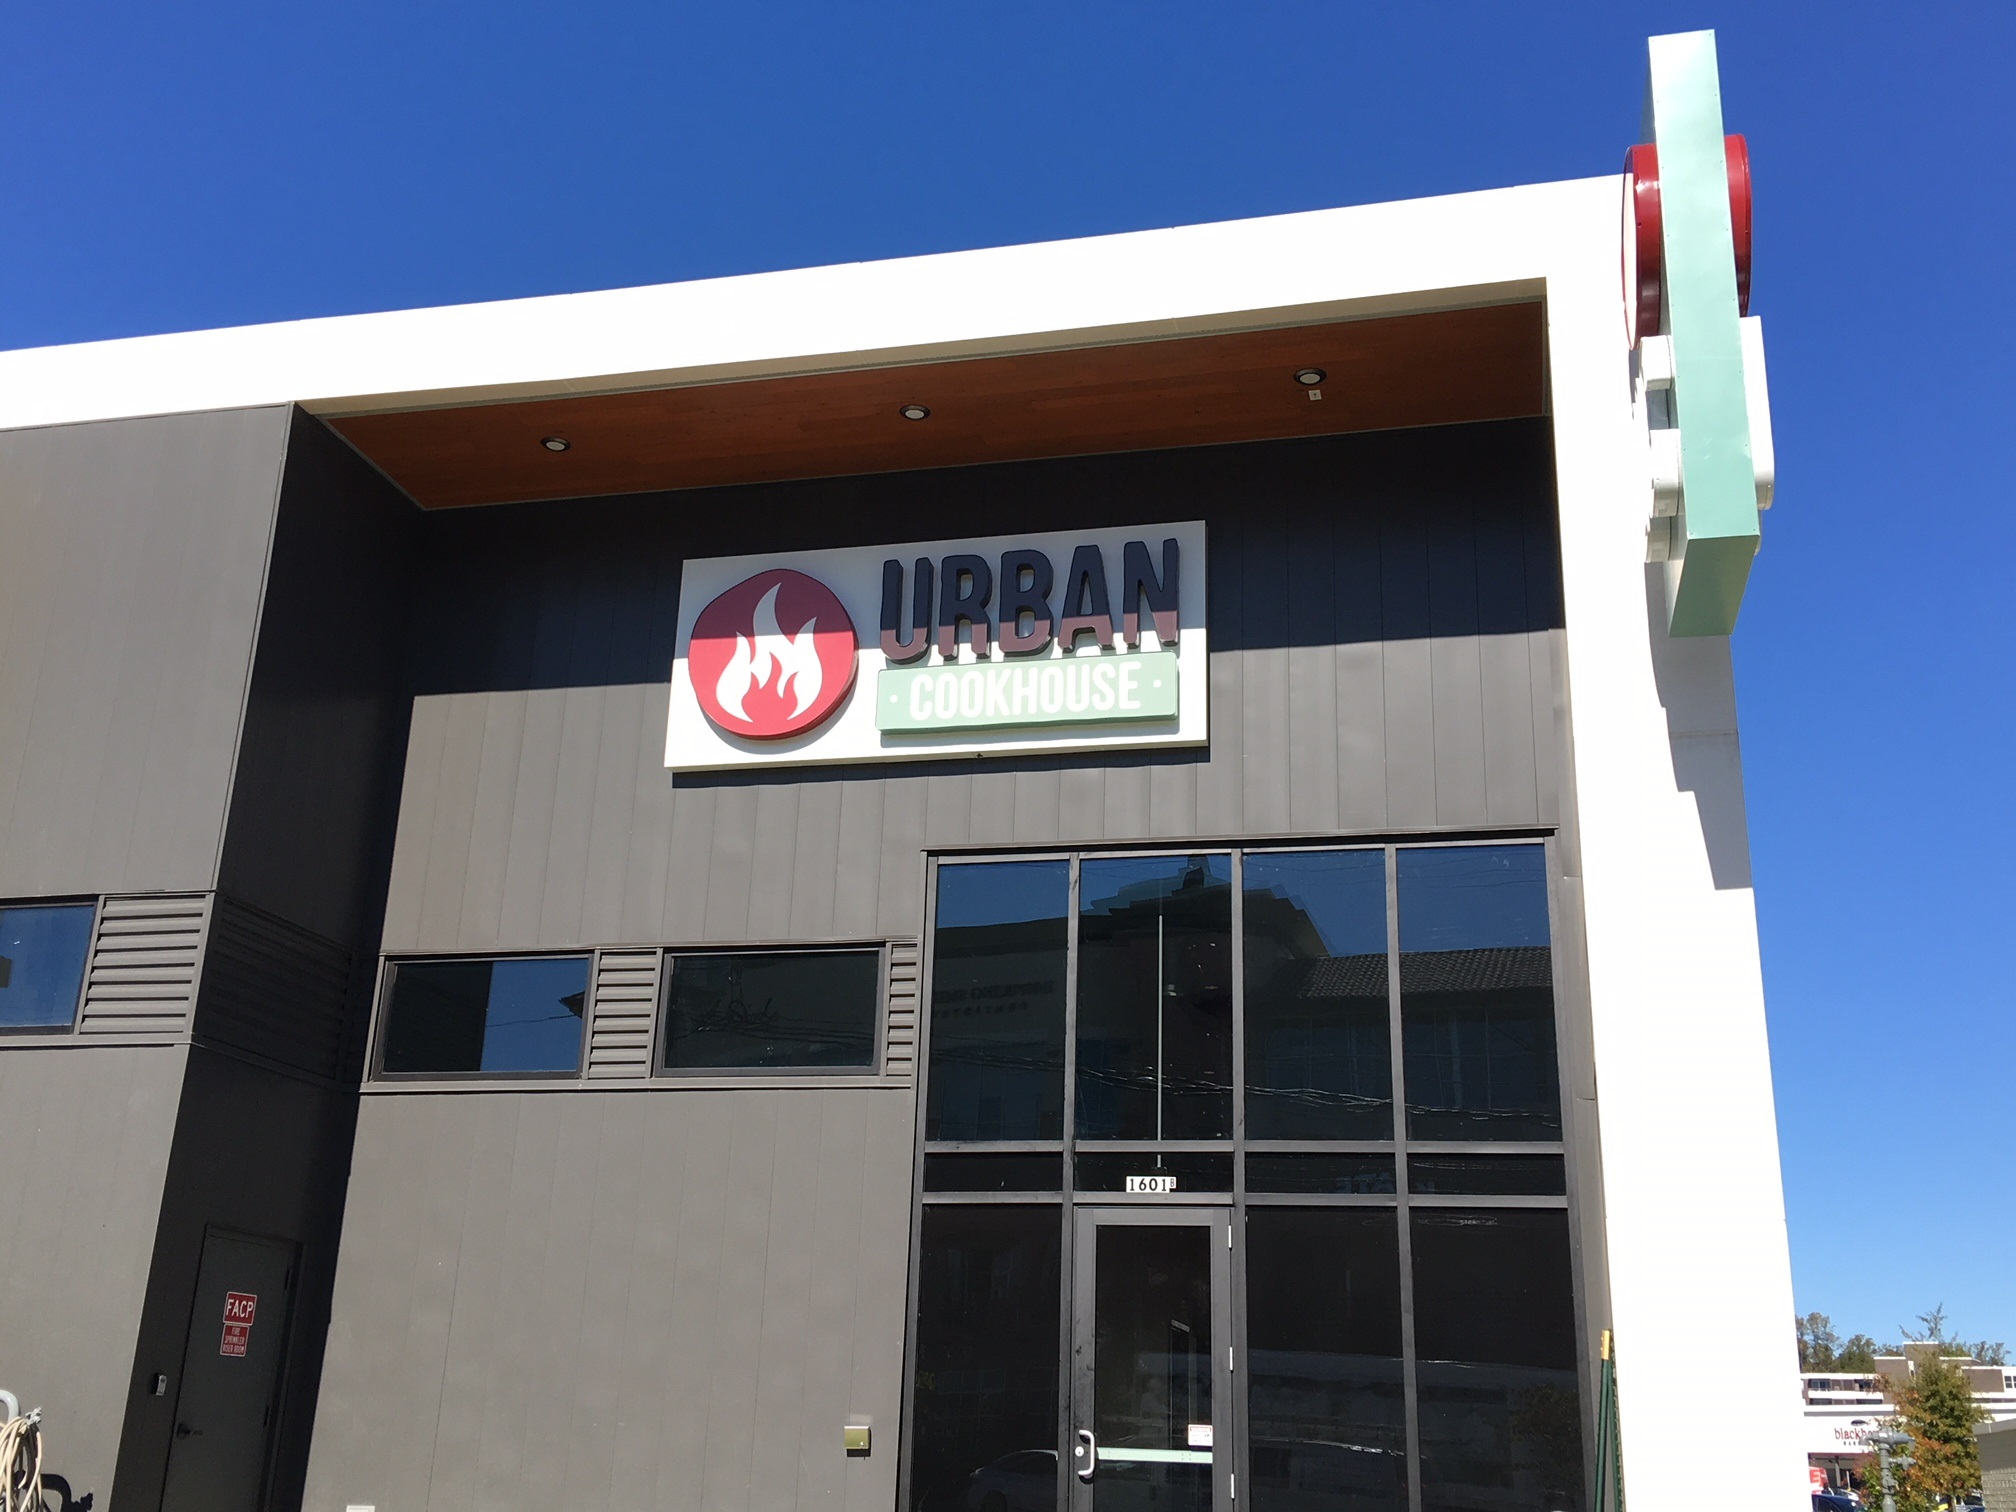 Urban Cookhouse Exterior Signage - JC Signs Charlotte